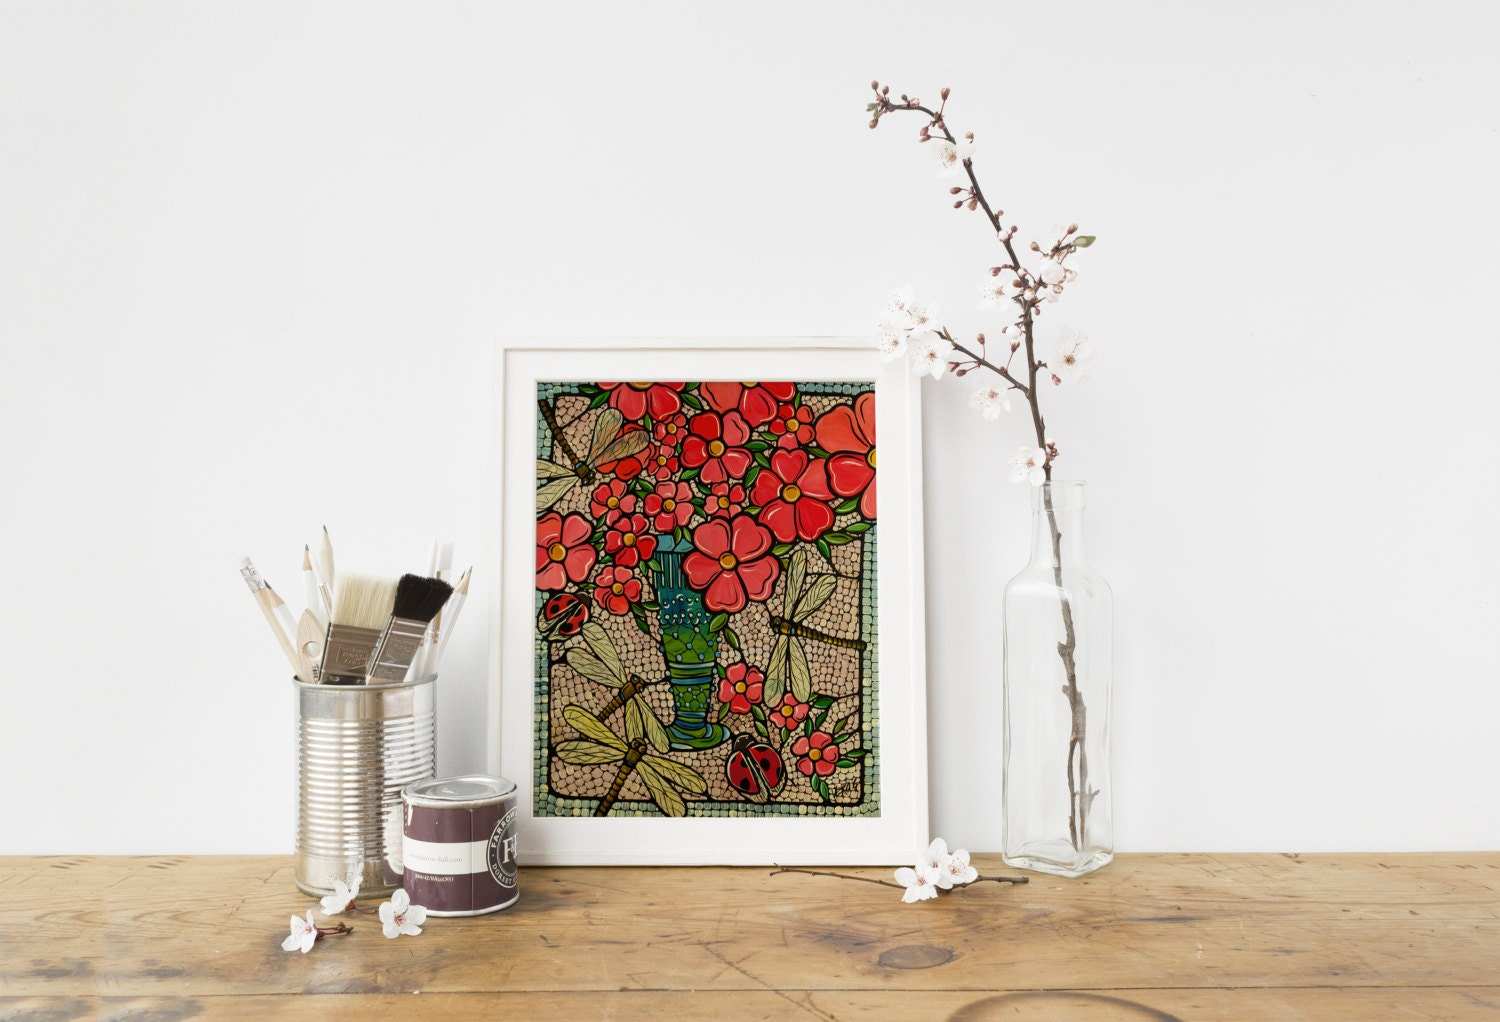 Red Flowers Art With Dragonfly Kitchen Home Decor 5x7